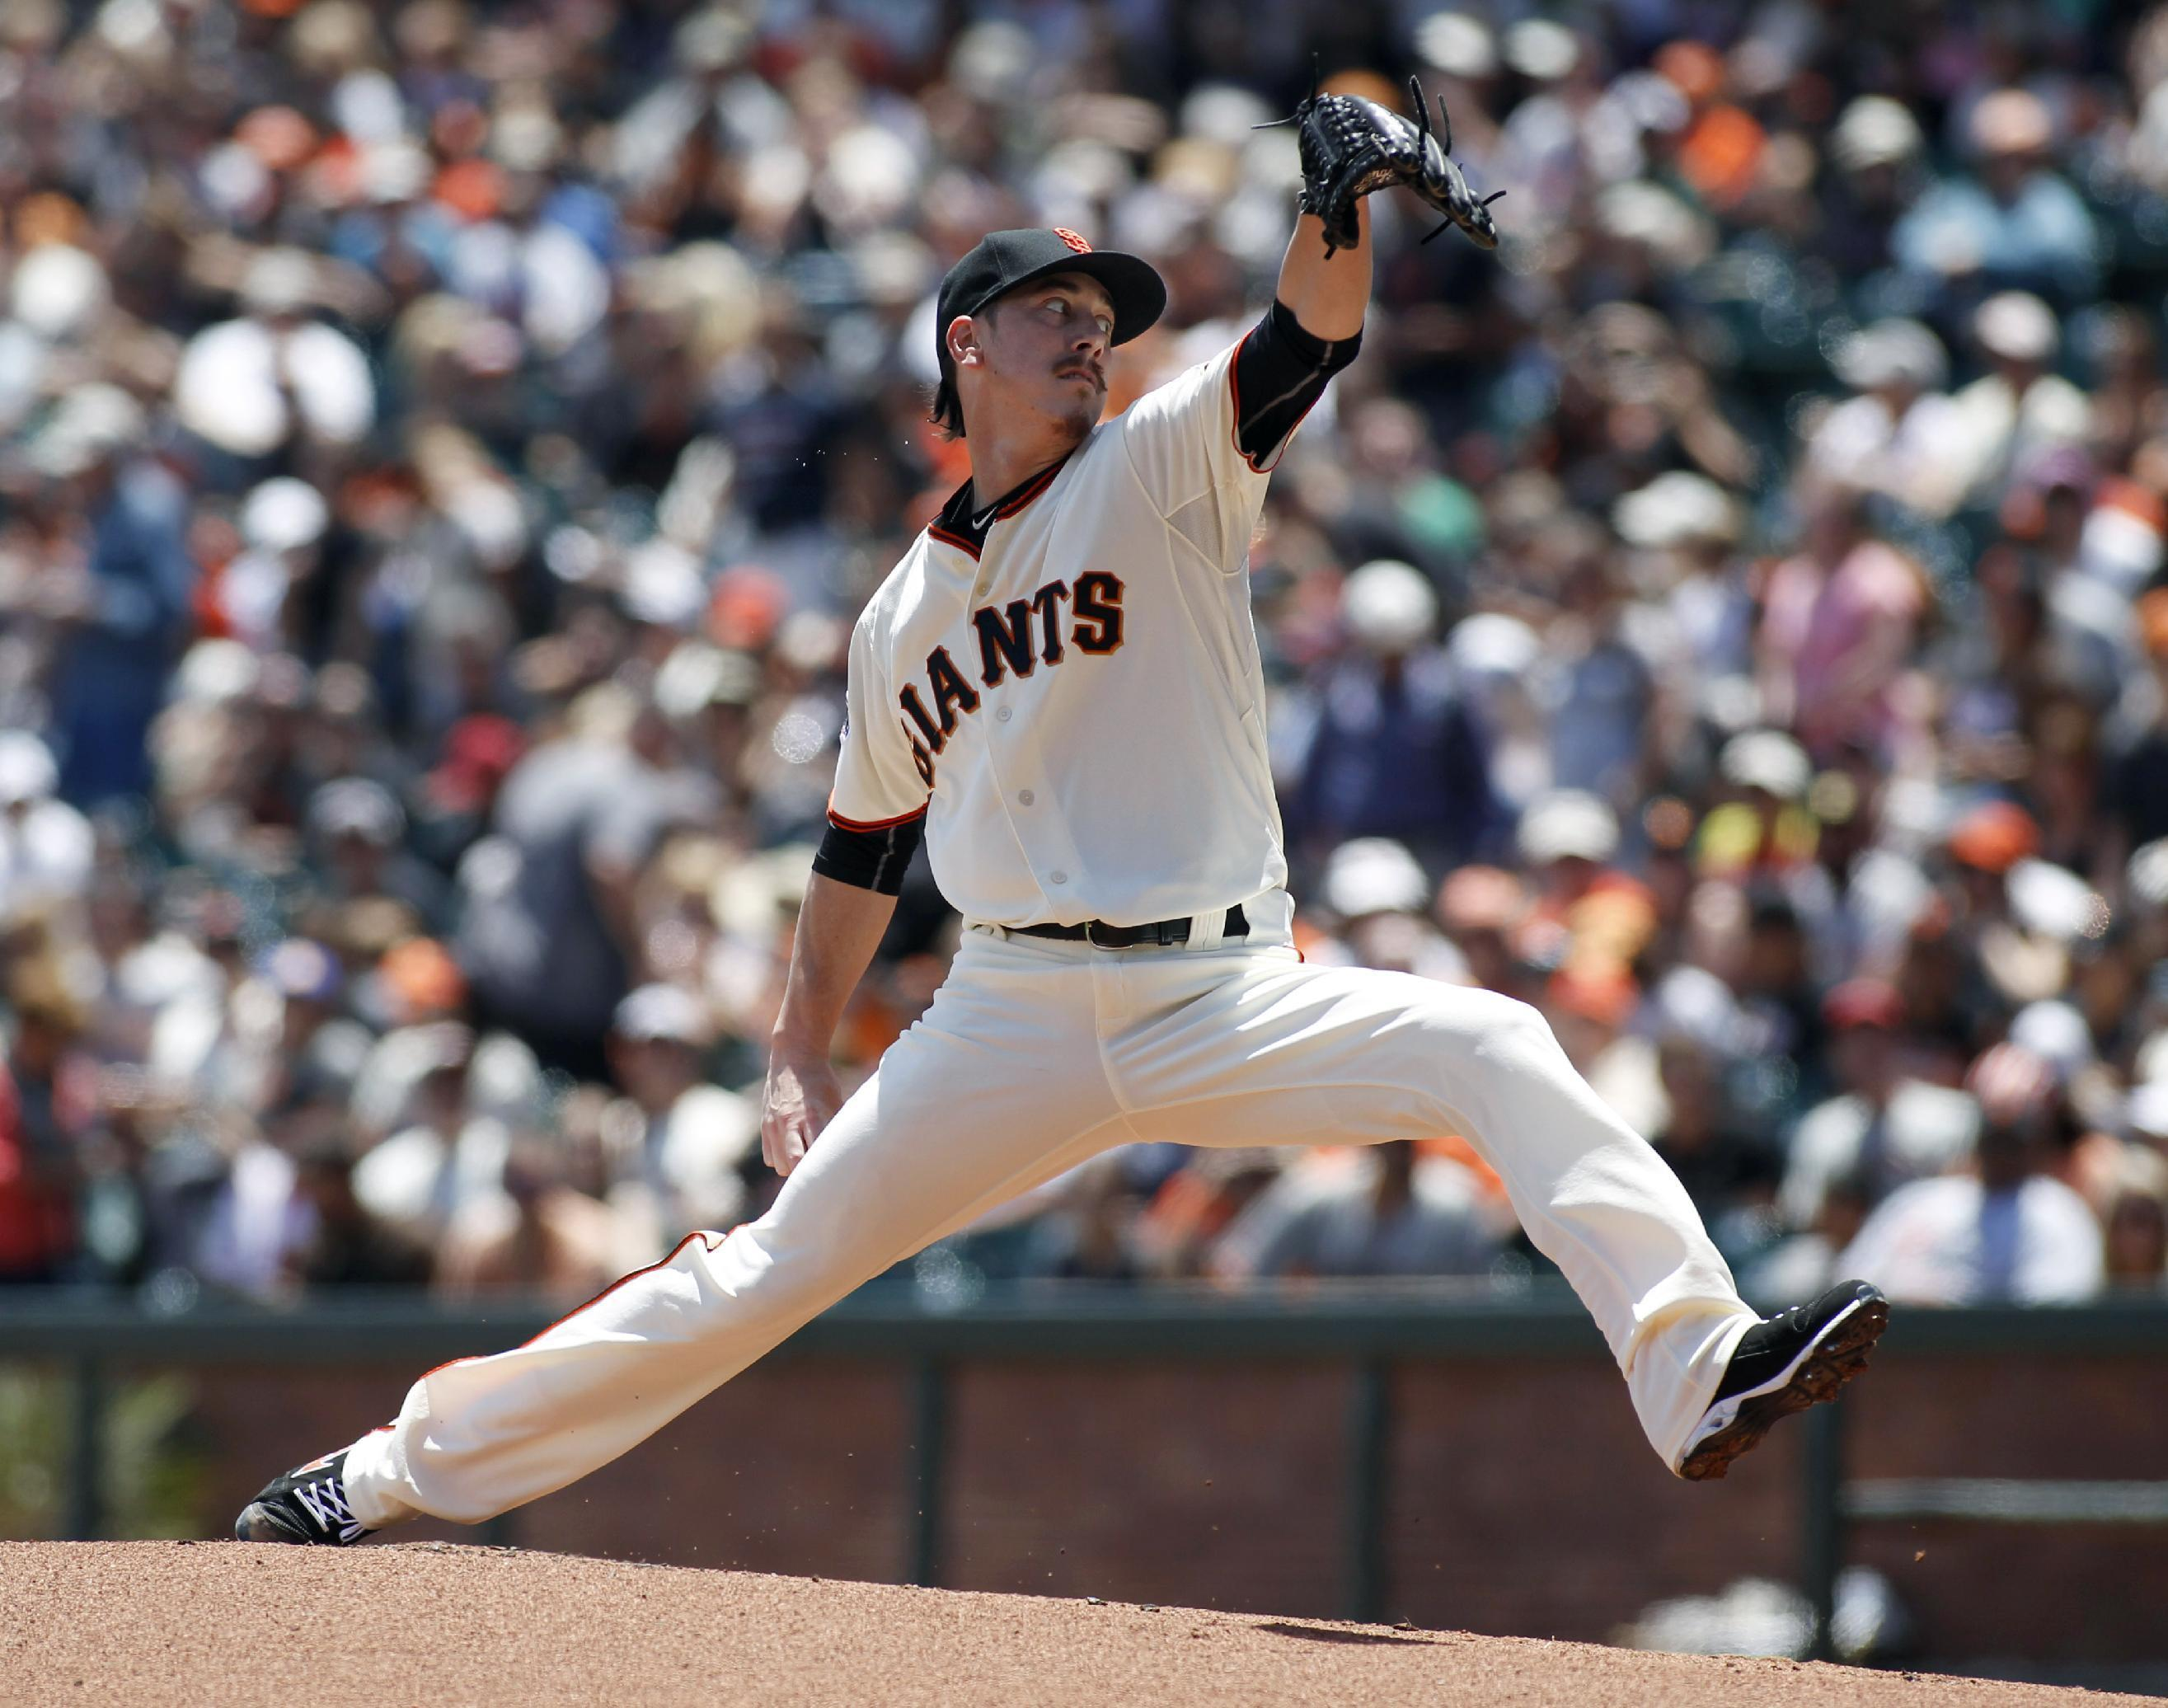 Hot Stove Digest: Tim Lincecum could hold his showcase soon